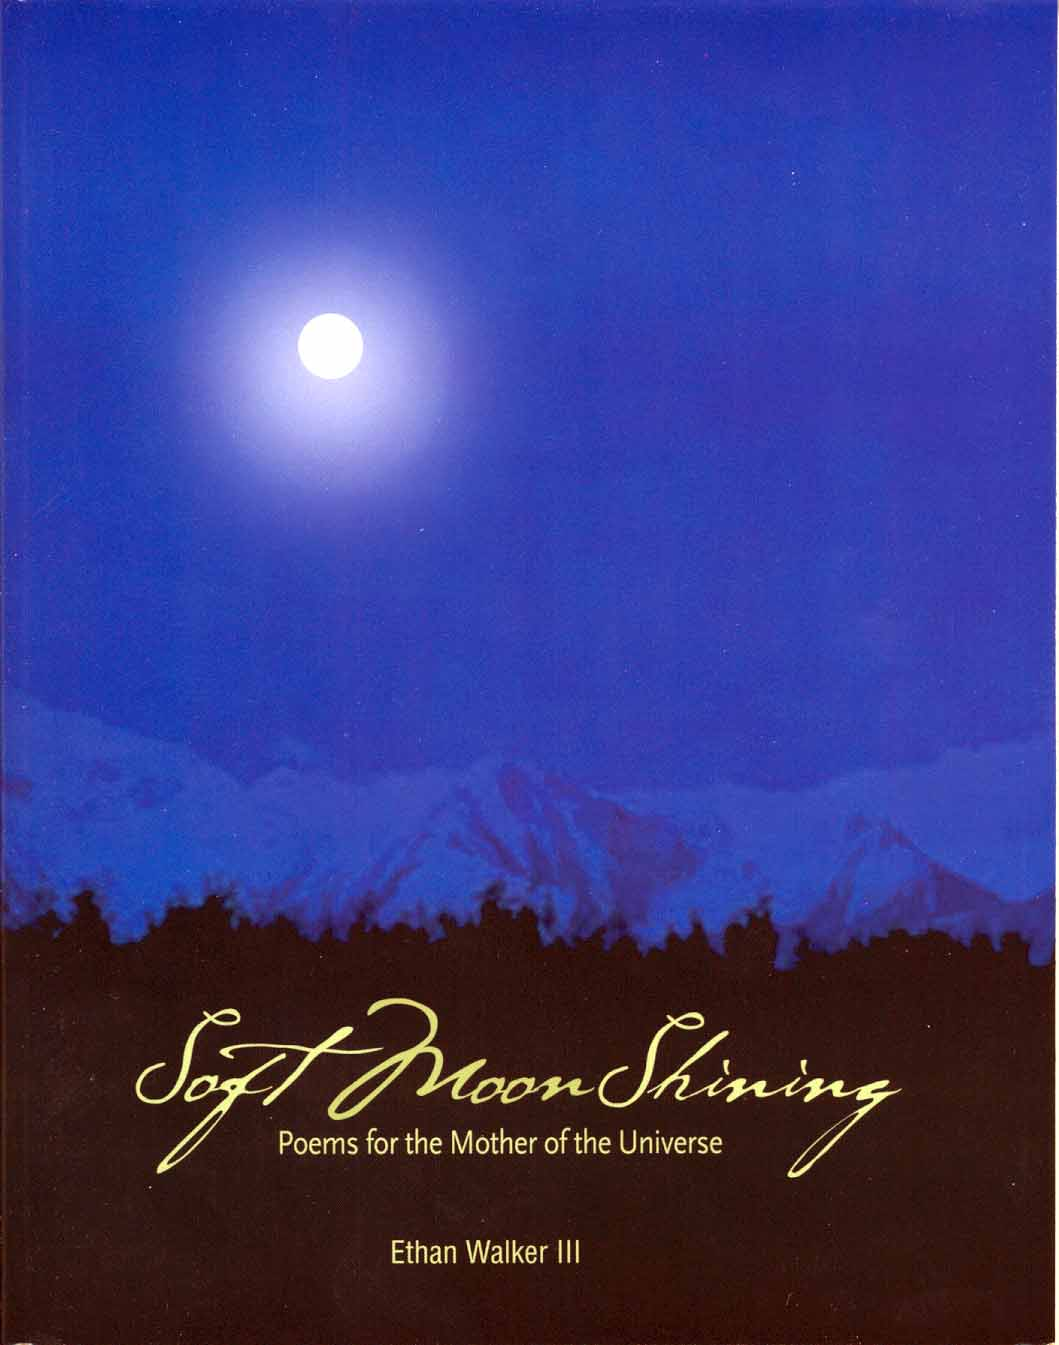 Soft Moon Shining